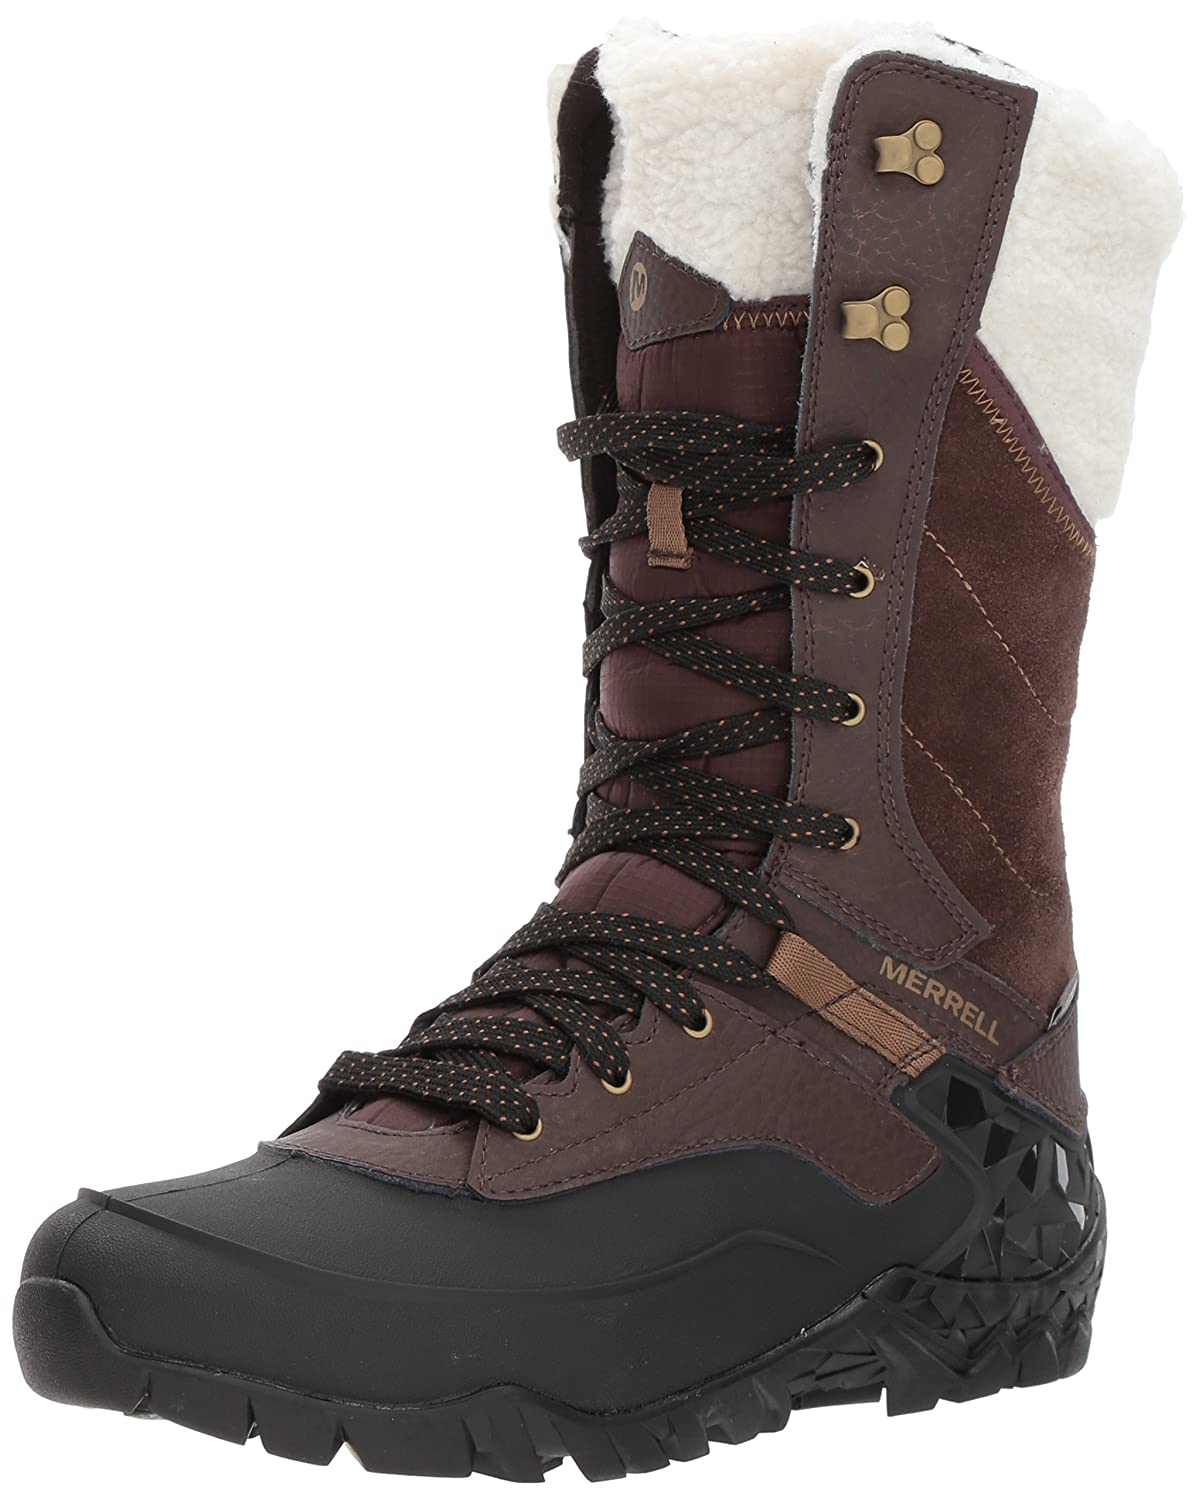 Merrell Women's Aurora Tall Ice Plus Waterproof Snow Boot B018WFBE5E 10 B(M) US|Espresso